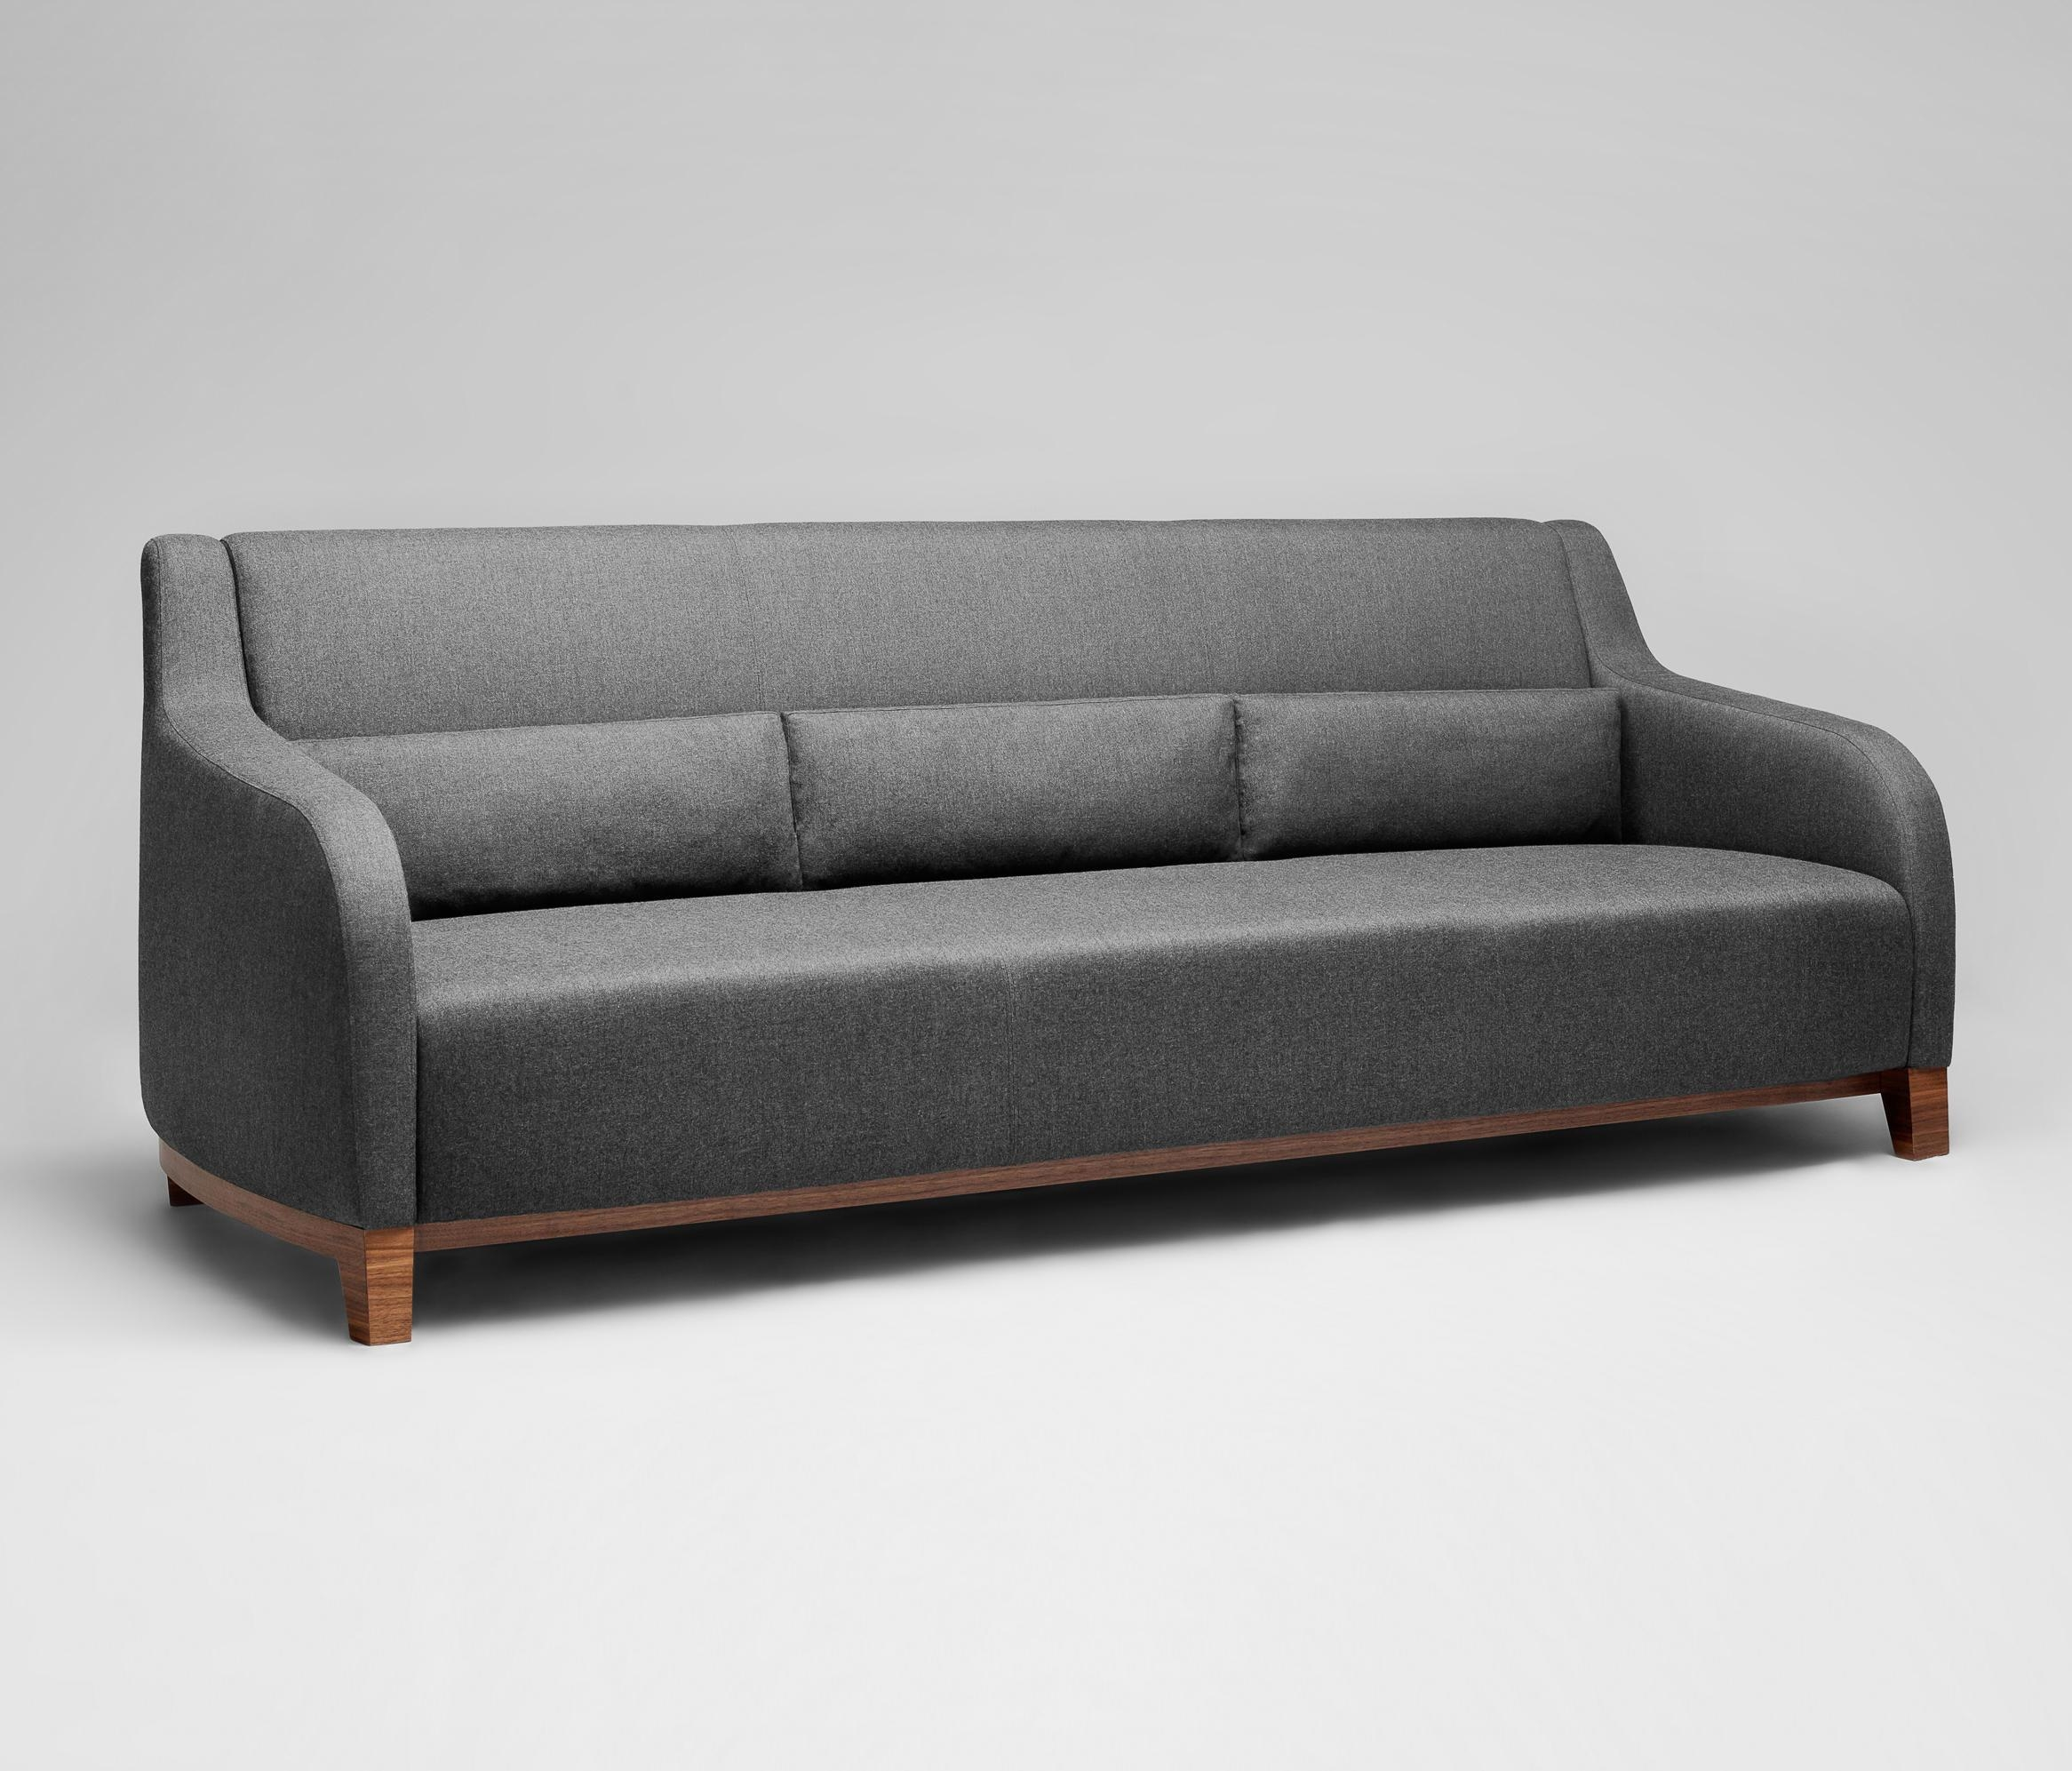 Collins Sofa – Lounge Sofas From Comforty | Architonic With Regard To Collins Sofas (Photo 14 of 20)